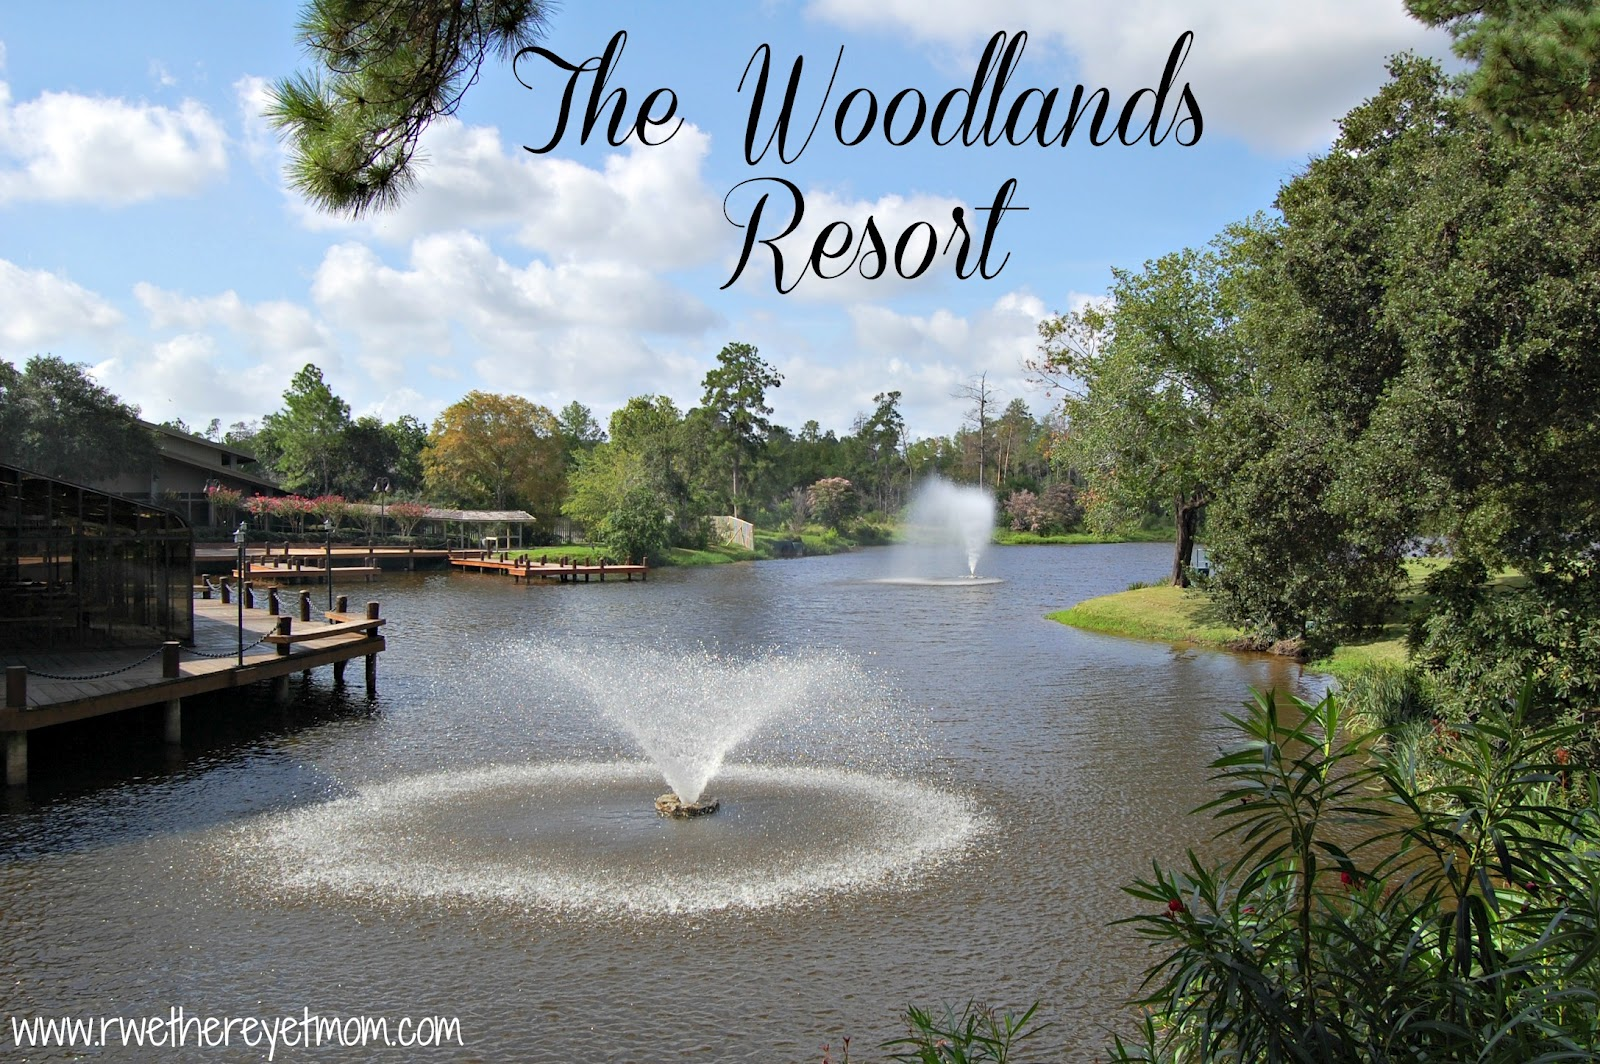 The woodlands resort the woodlands texas r we there for Texas spas and resorts